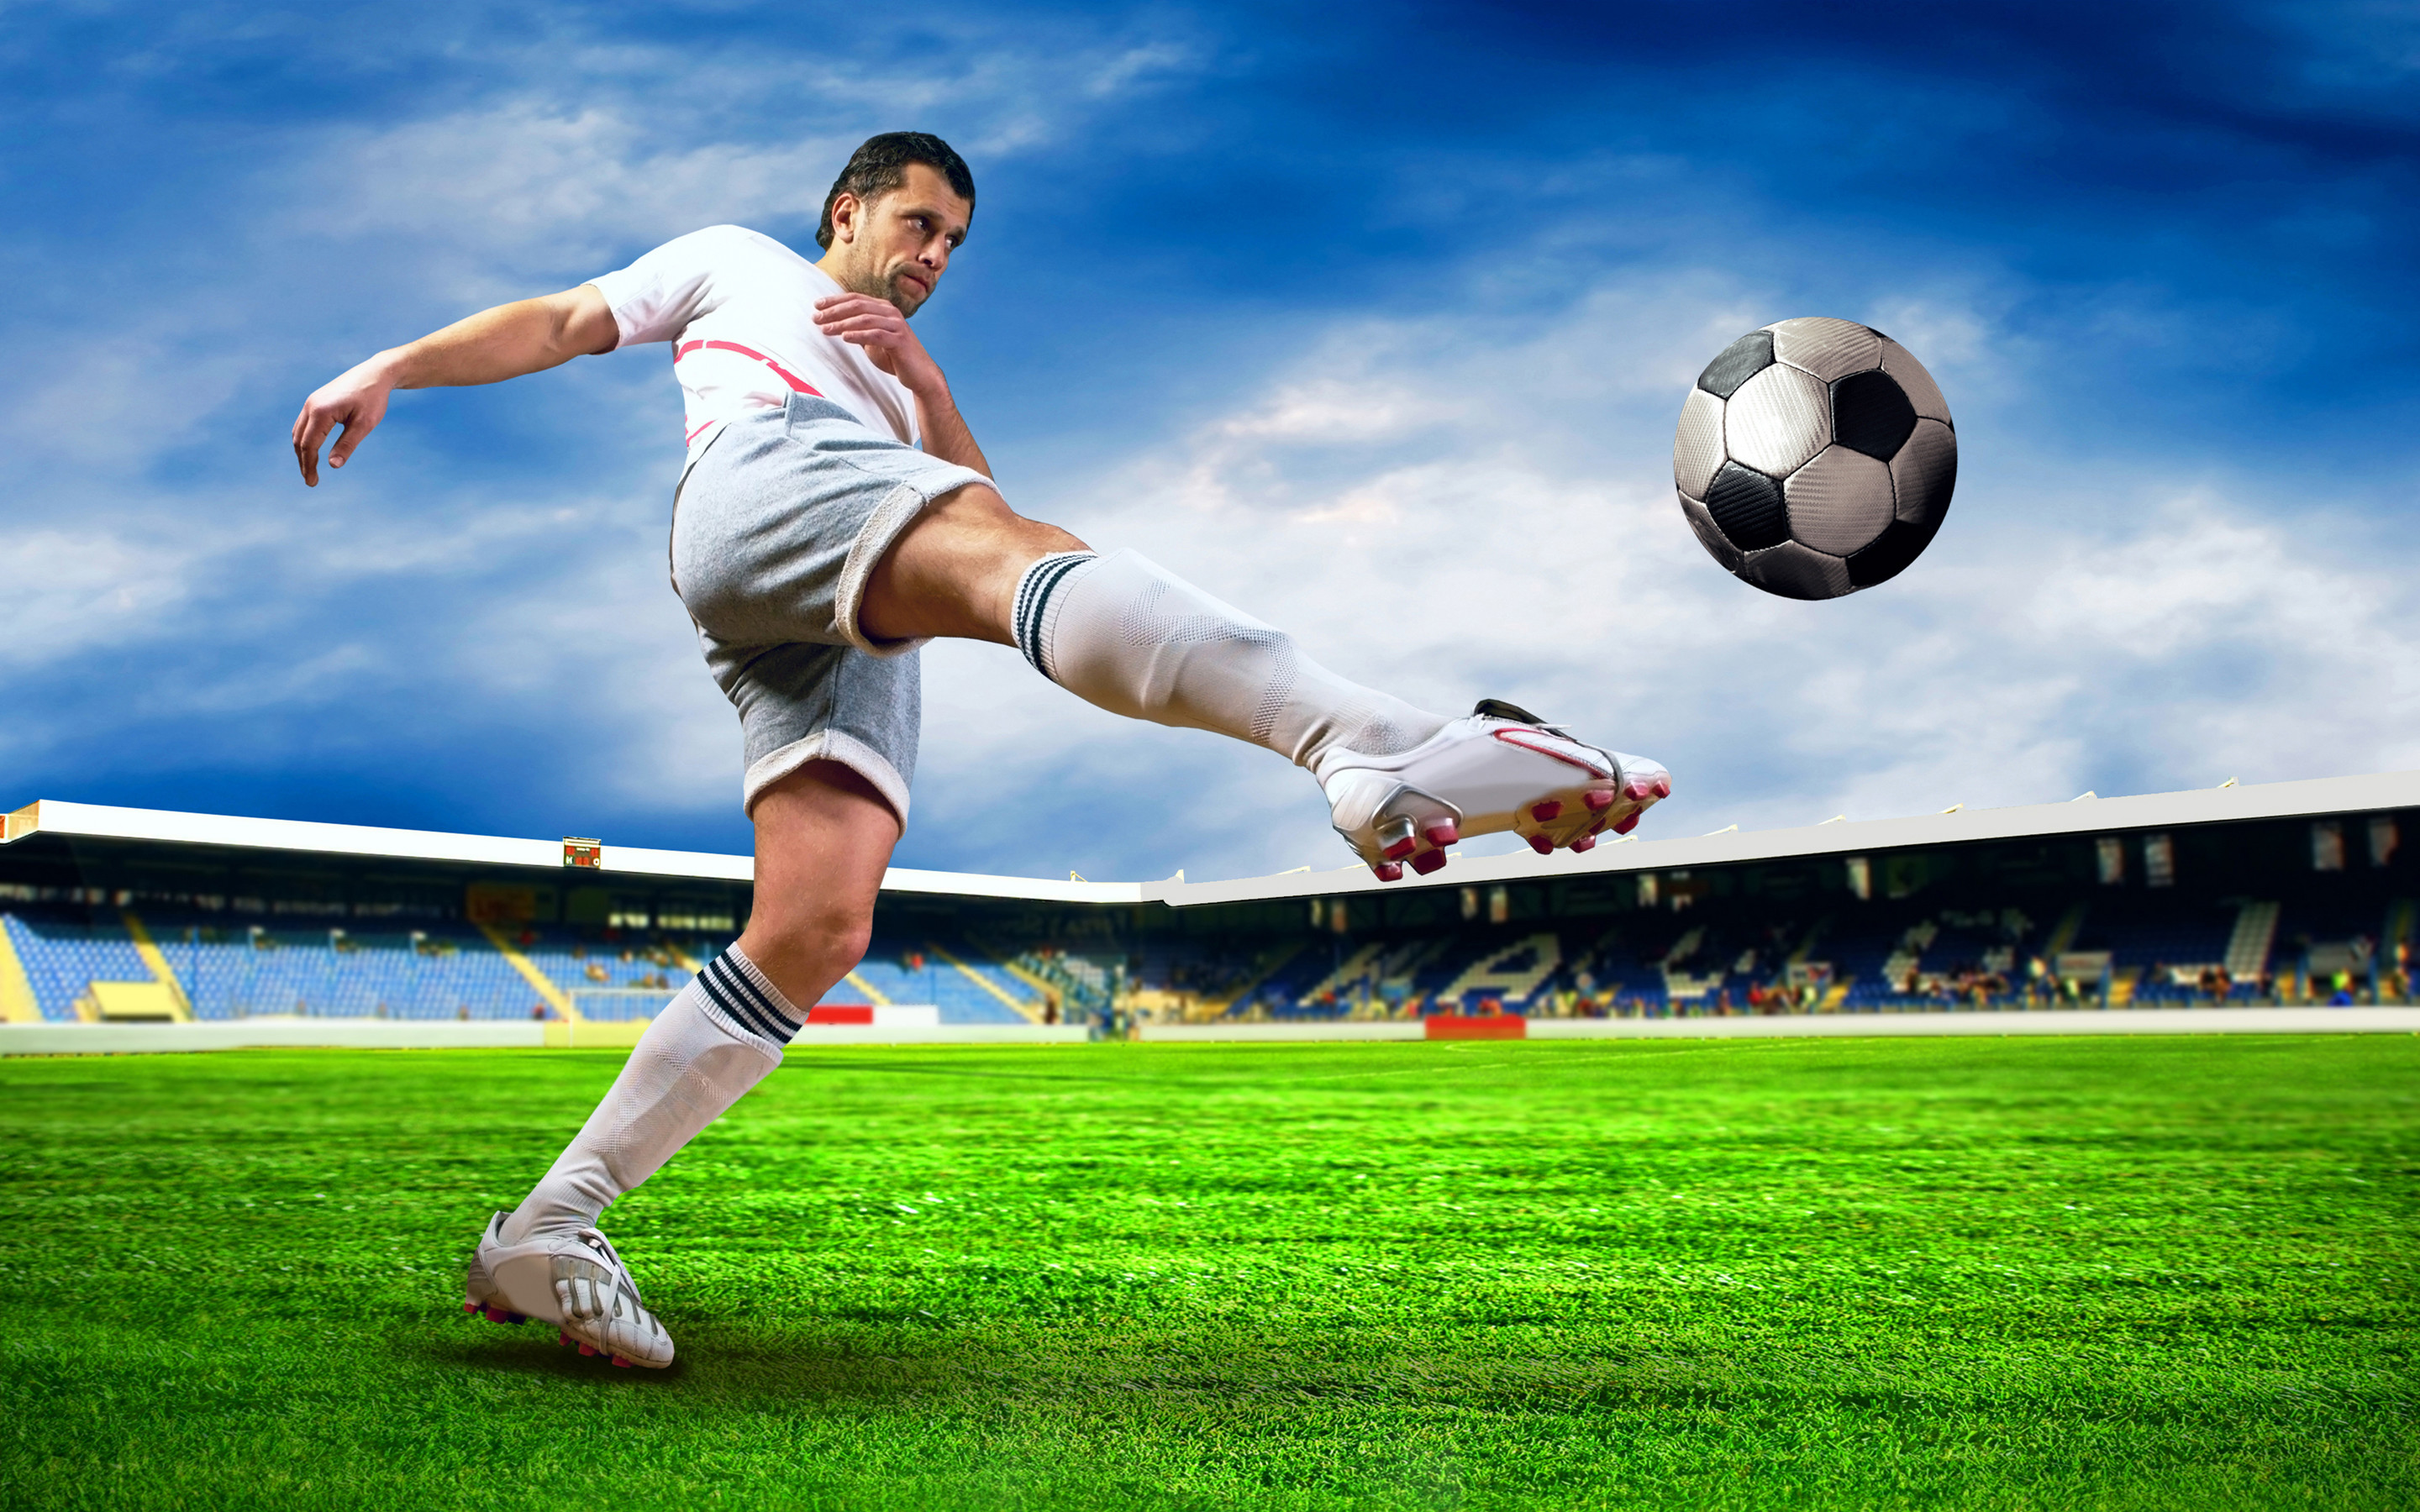 2880x1800 Awesome Soccer Wallpapers | Soccer Wallpapers